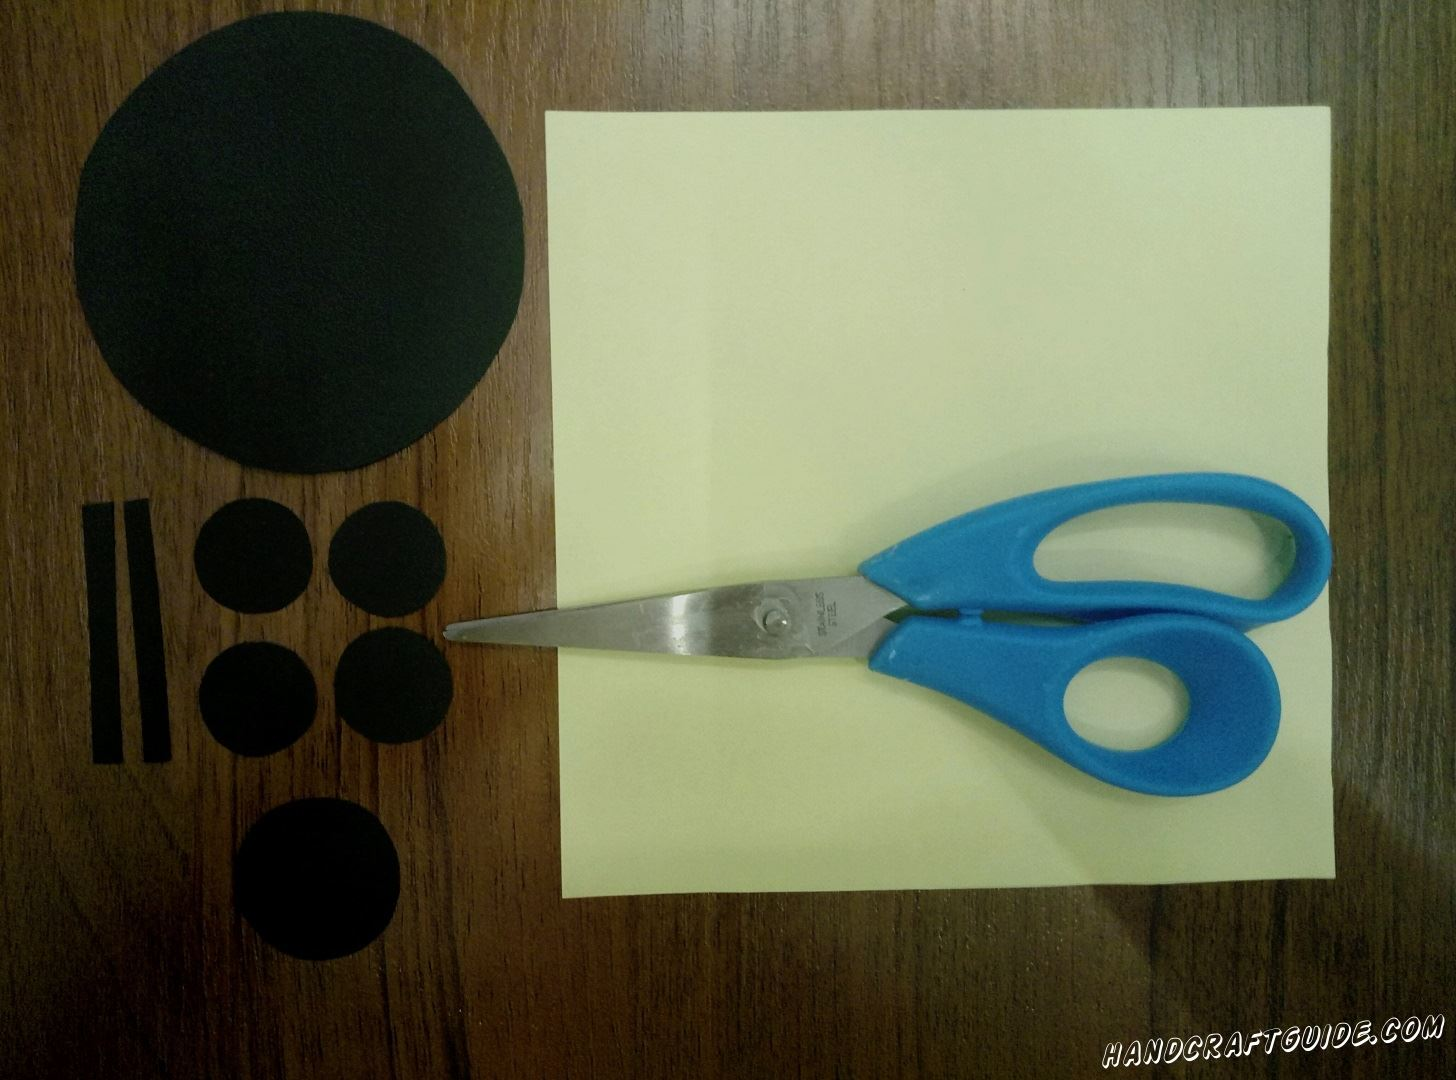 Cut  all the details out of the black paper as shown in the photo.